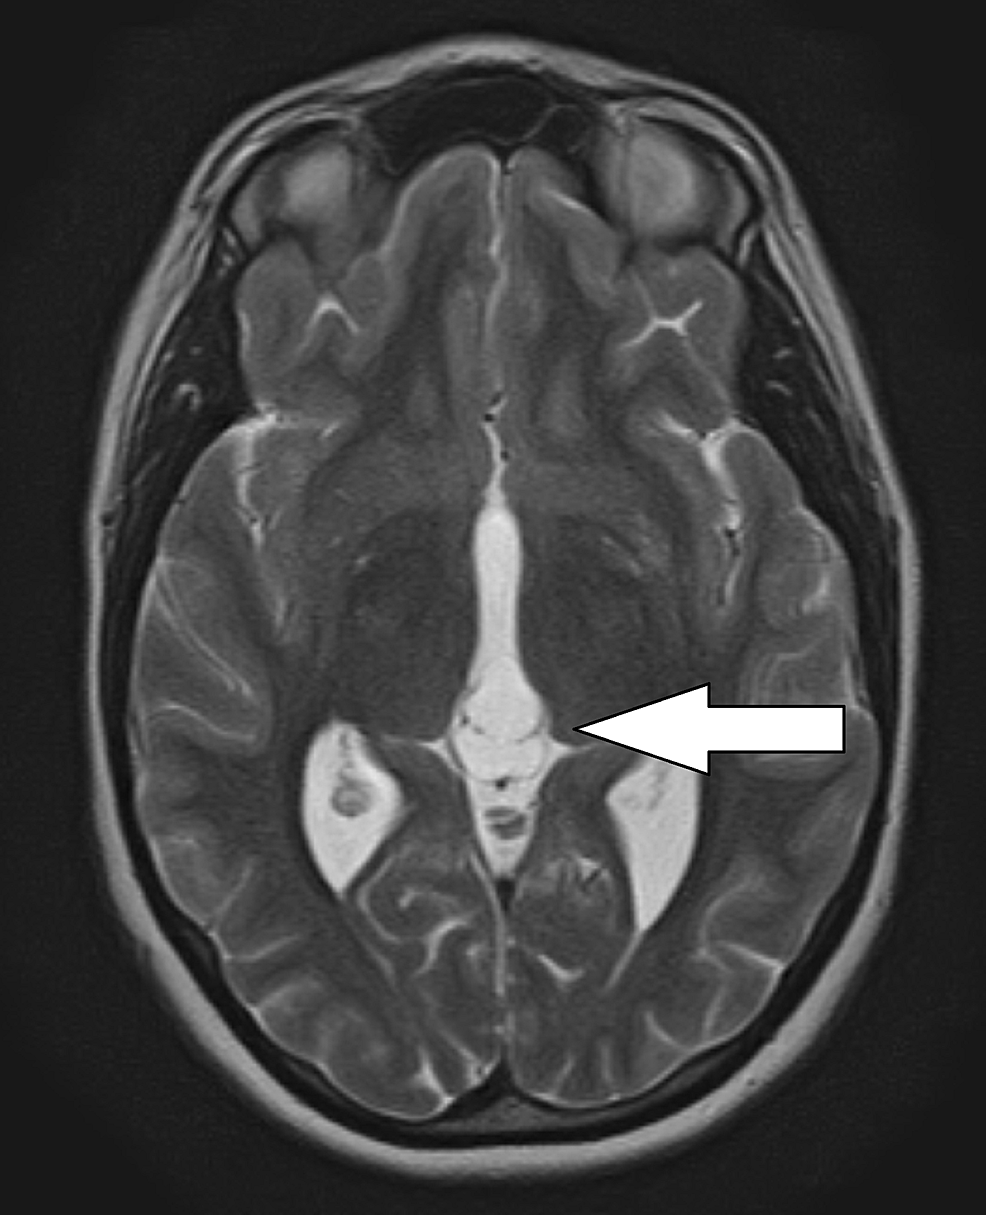 T2-weighted-axial-magnetic-resonance-imaging-(MRI)-demonstrating-septated-pineal-cyst.